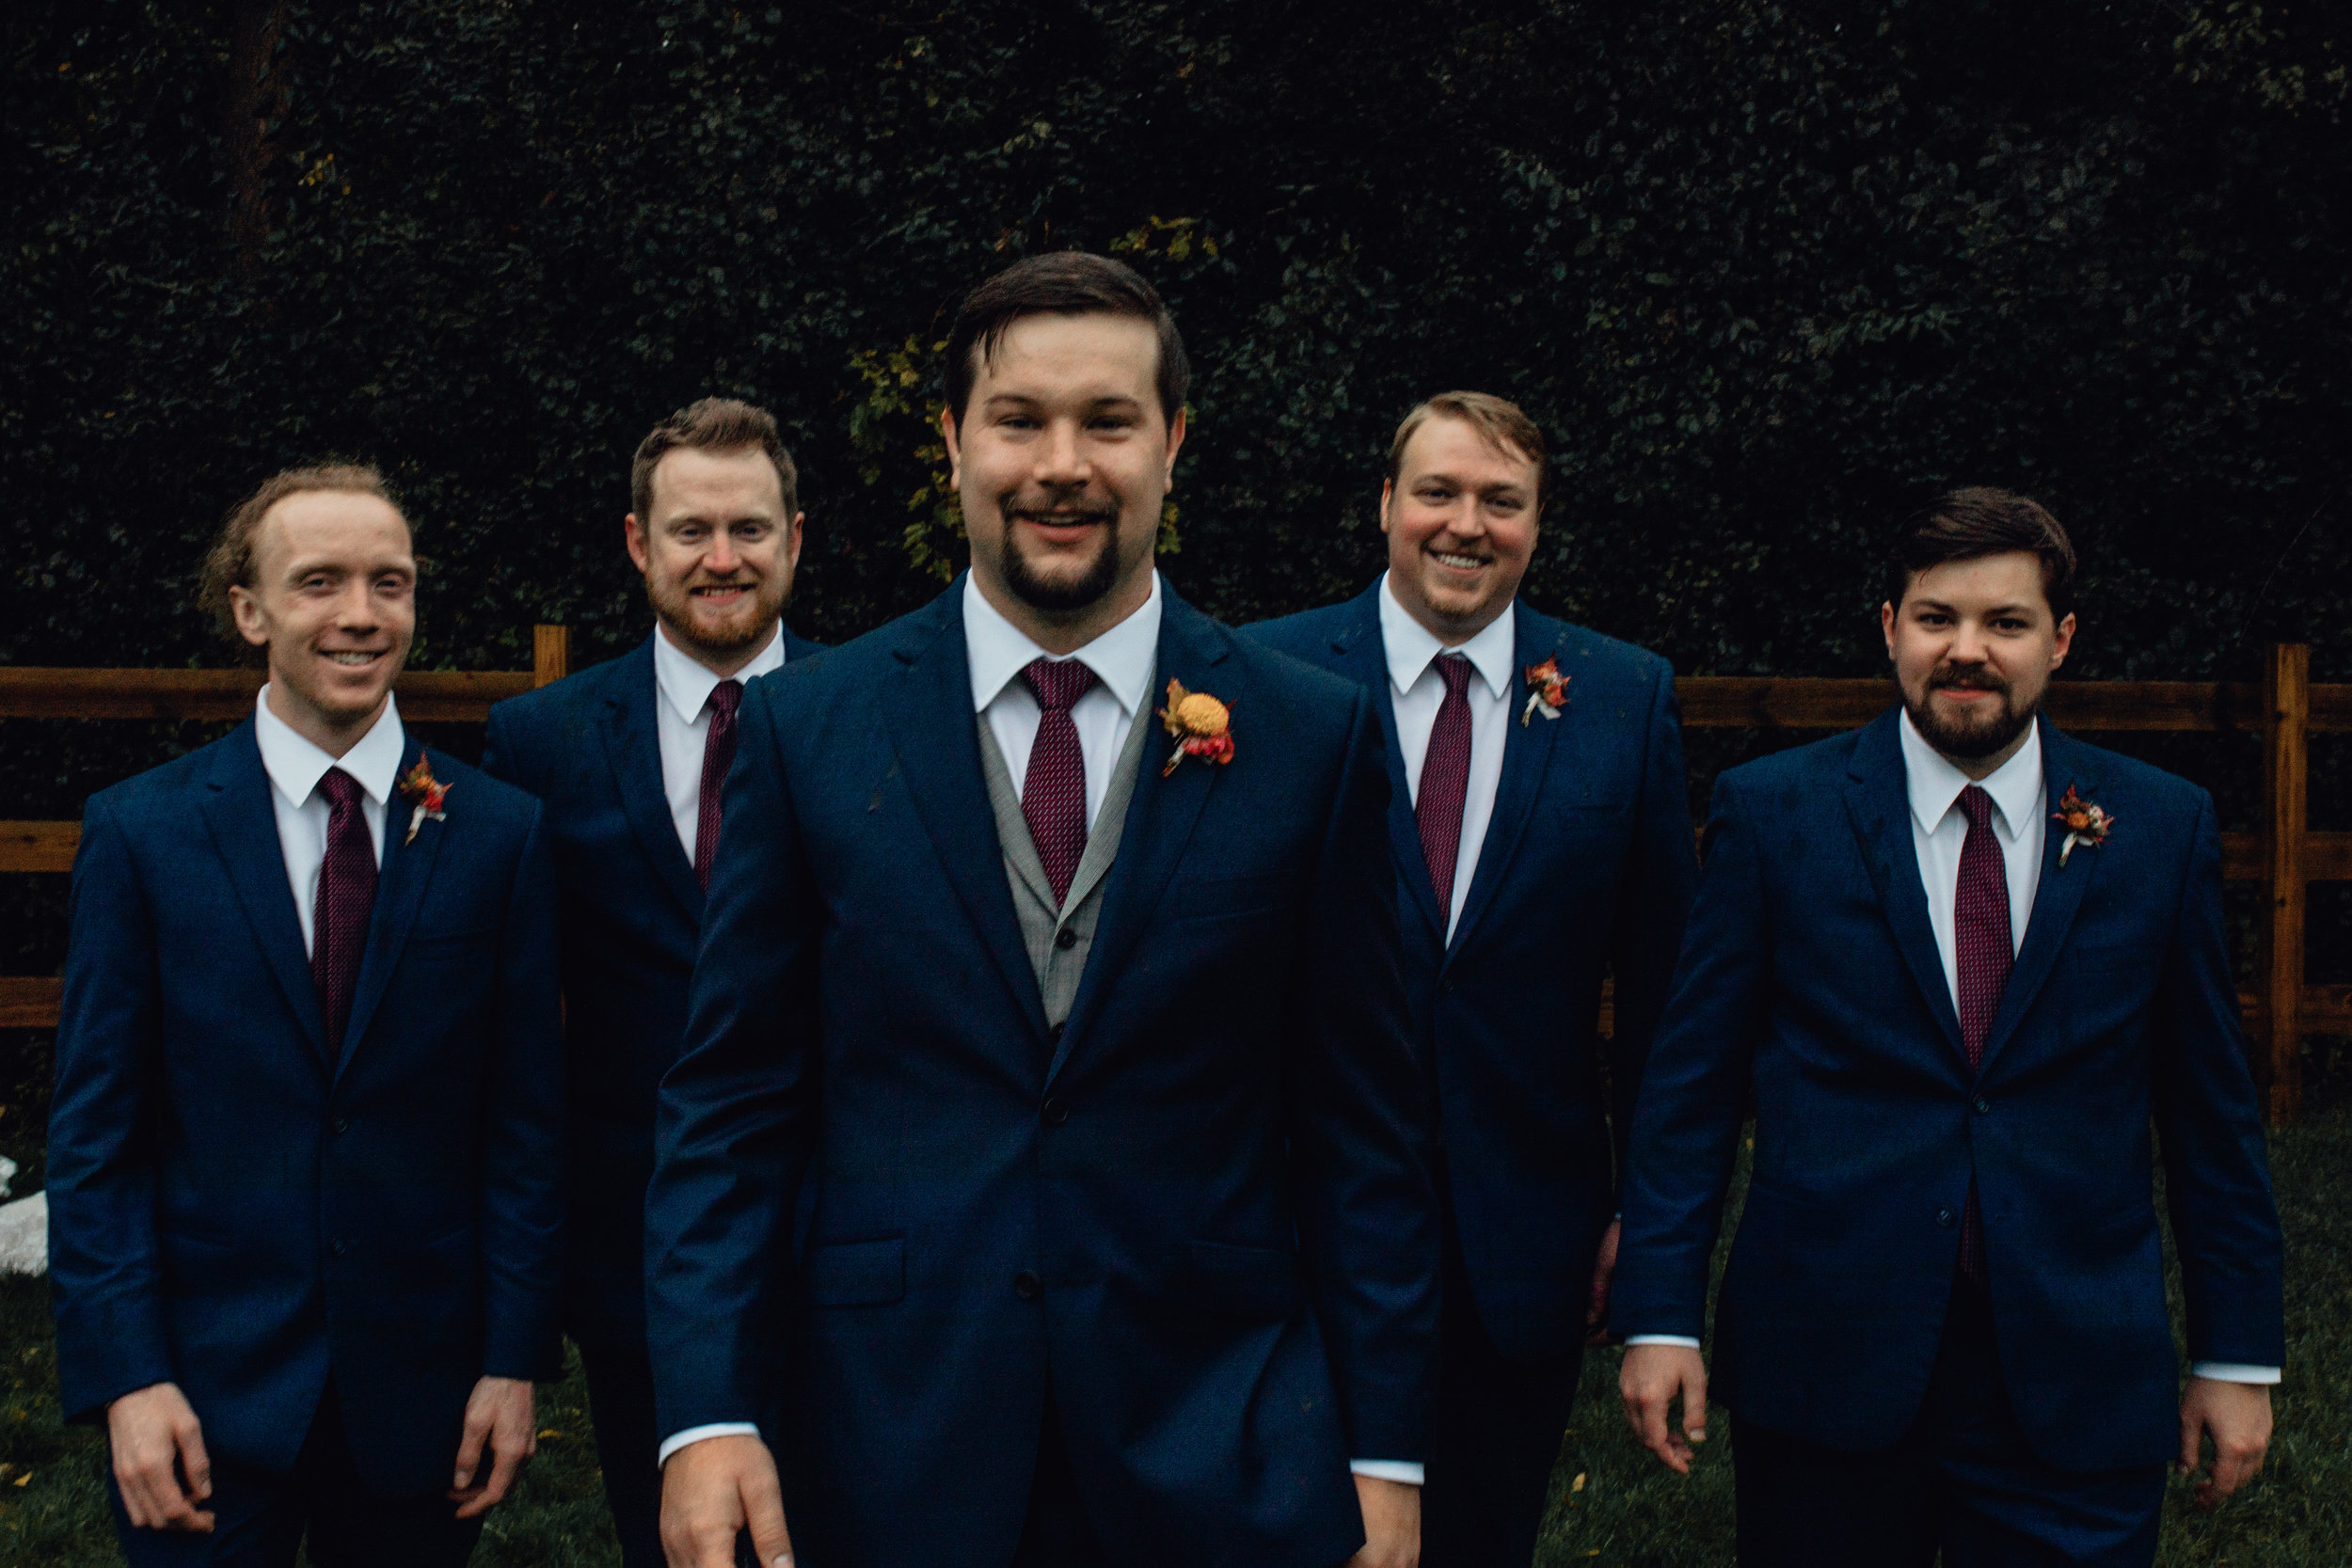 groomsmen-walking-portrait-at-rustic-manor-1848.jpg